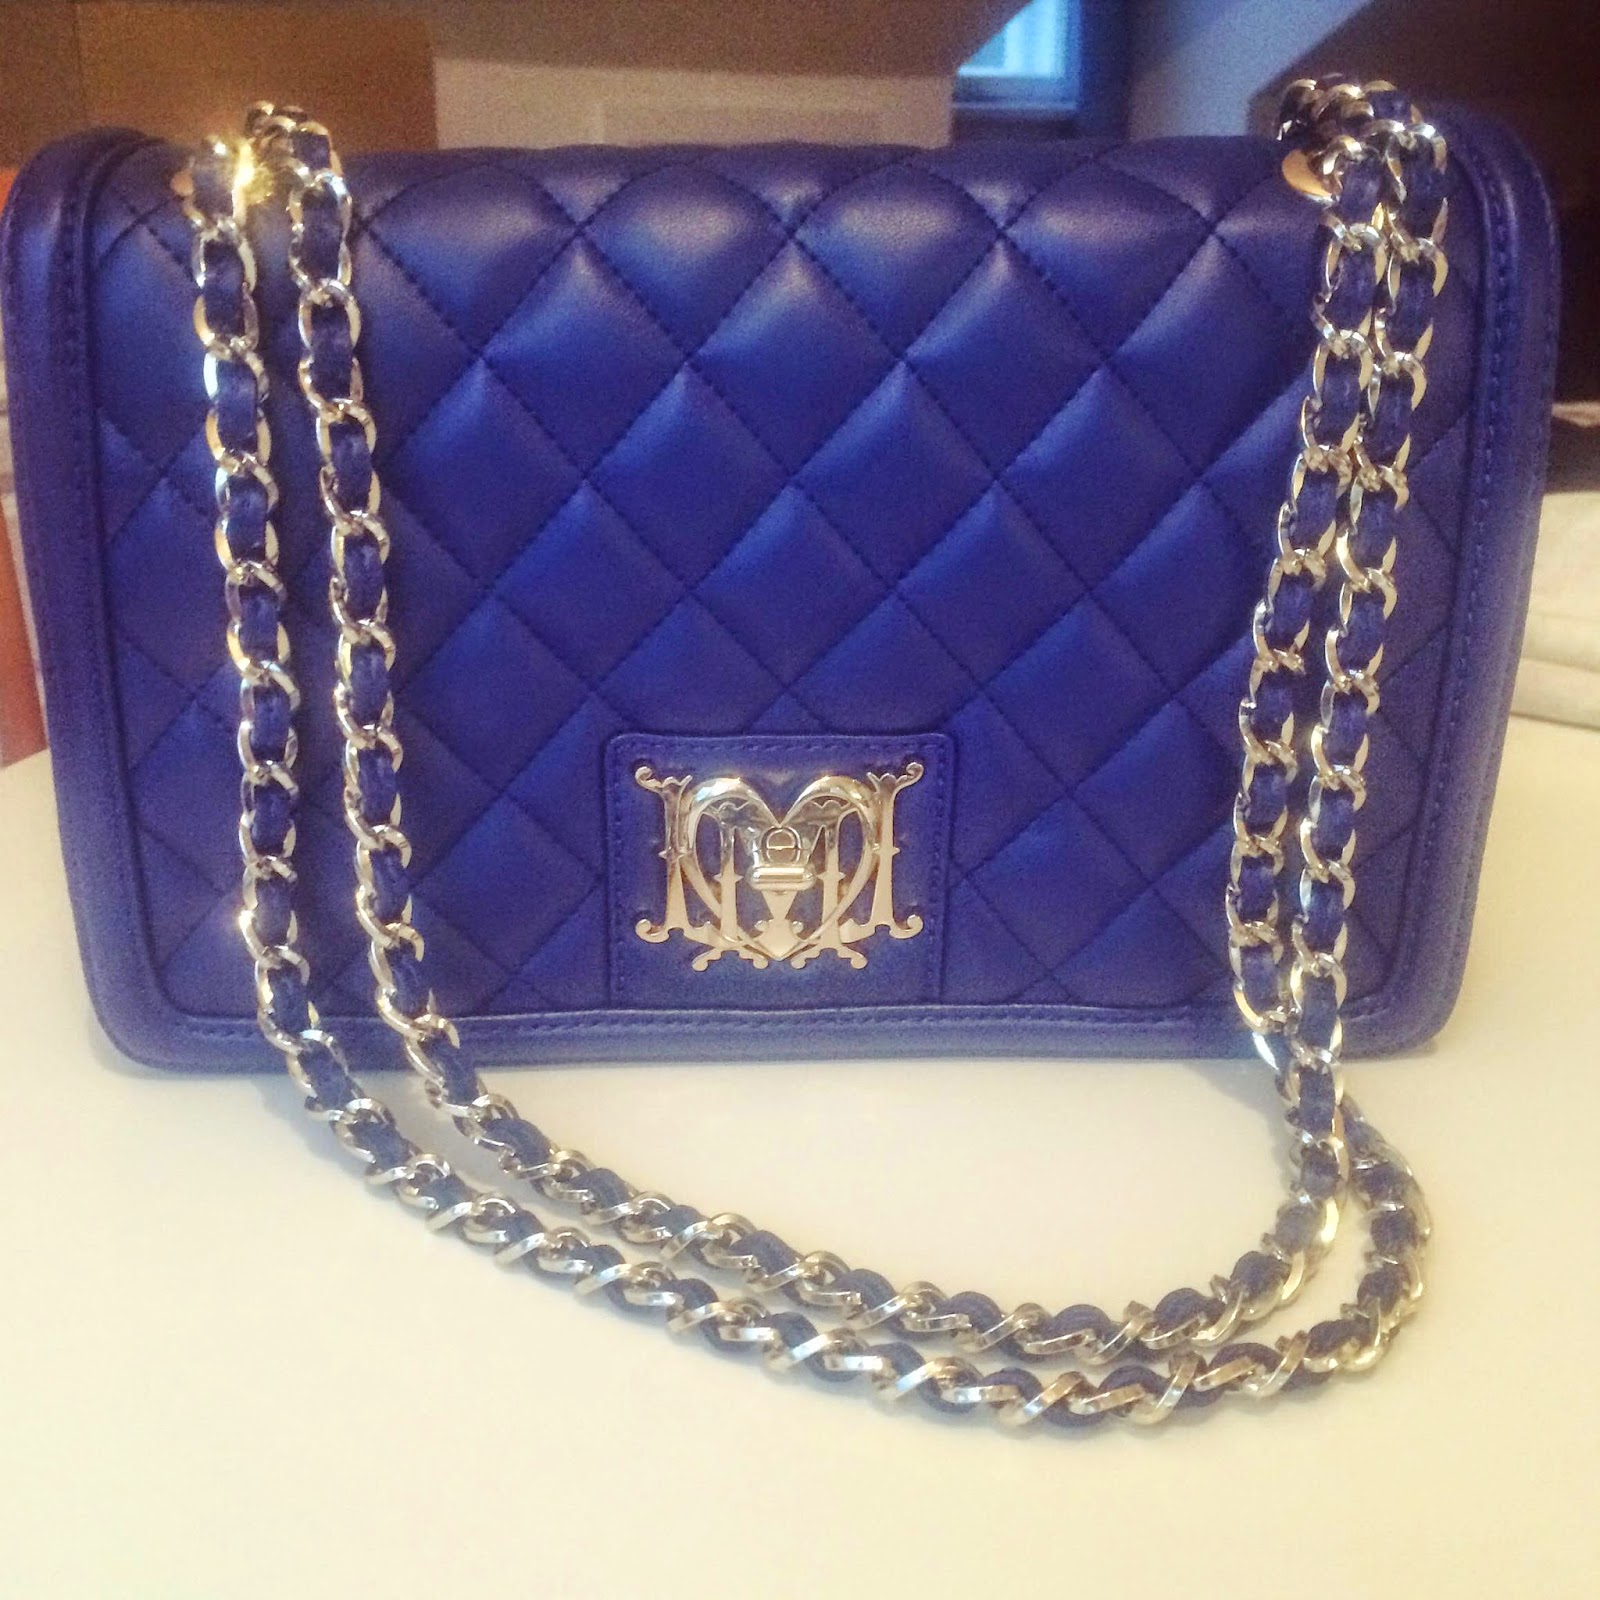 love-moschino-blue-handbag